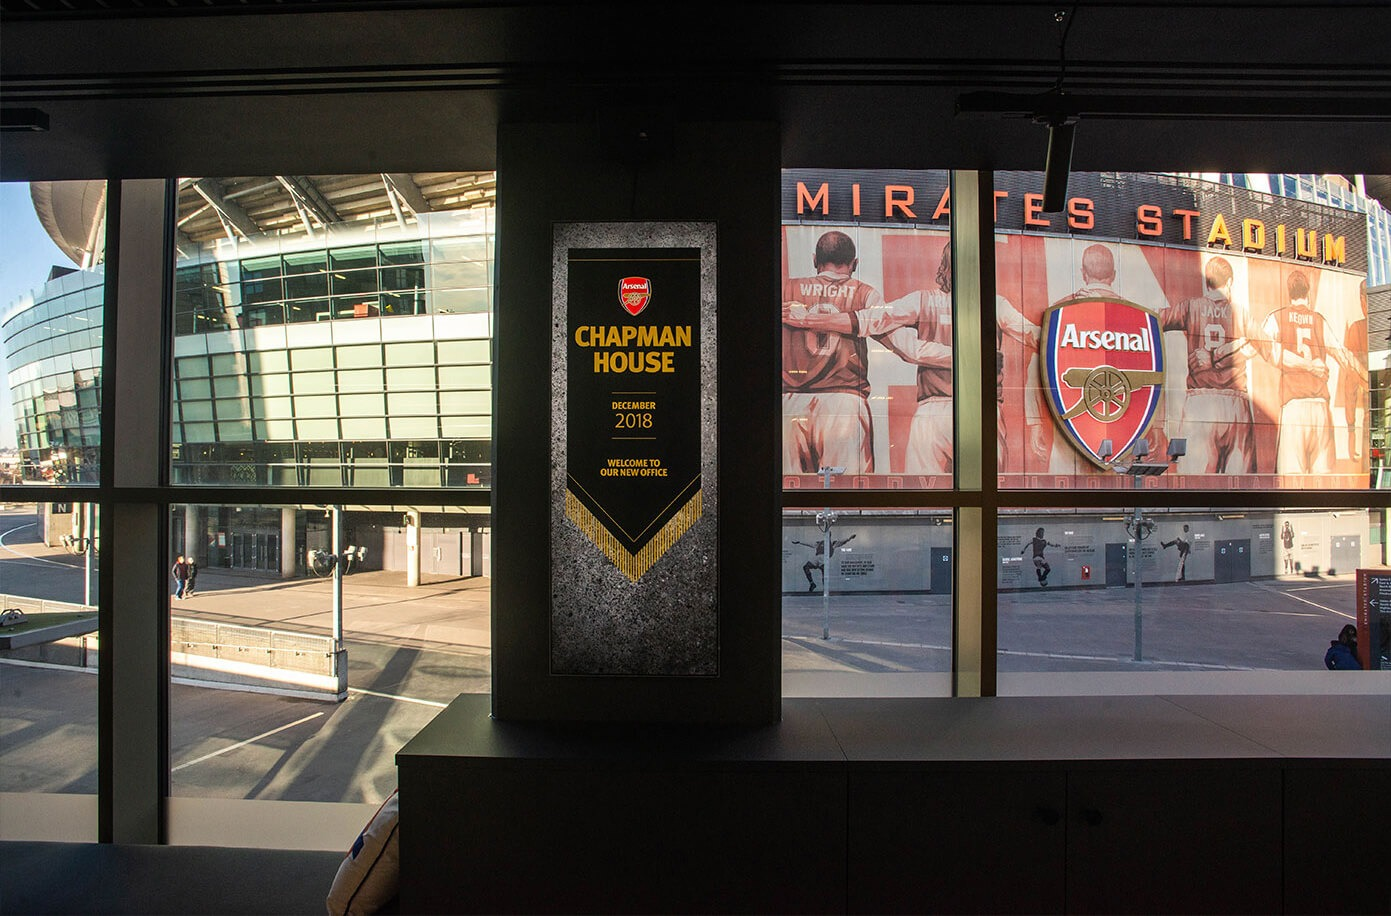 Arsenal FC – Chapman House